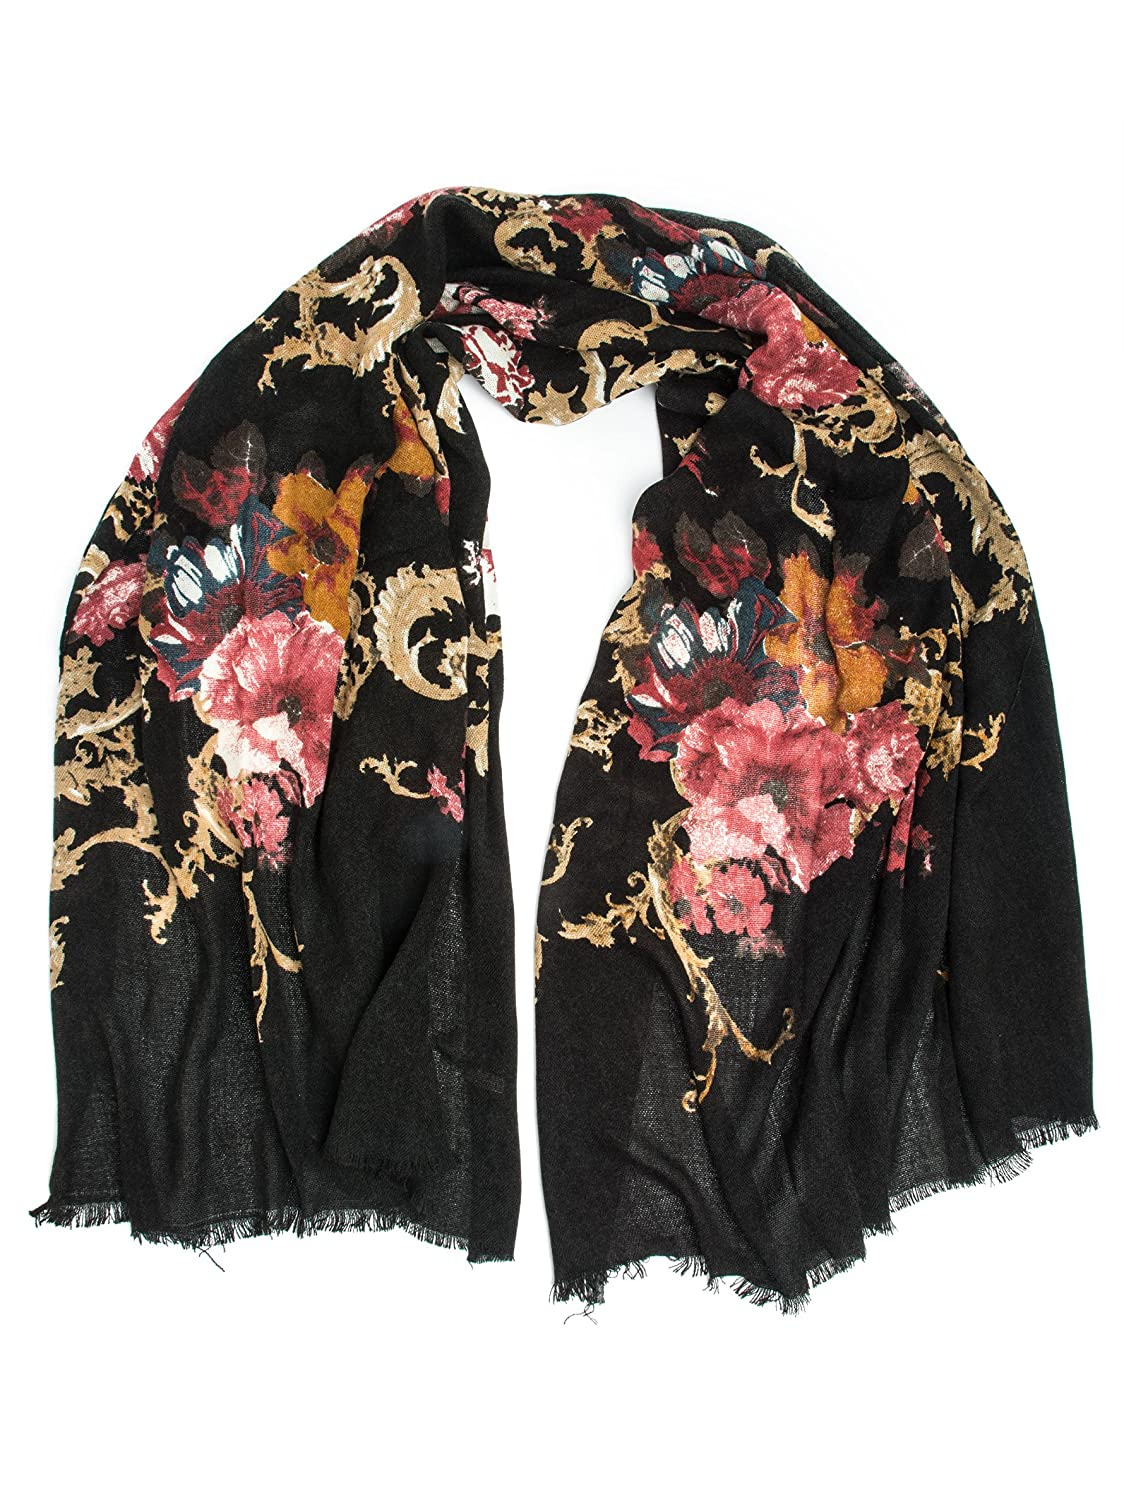 Vintage Scarves- New in the 1920s to 1960s Styles Eleanor blanket scarf oversized winter scarf floral scarf $26.95 AT vintagedancer.com